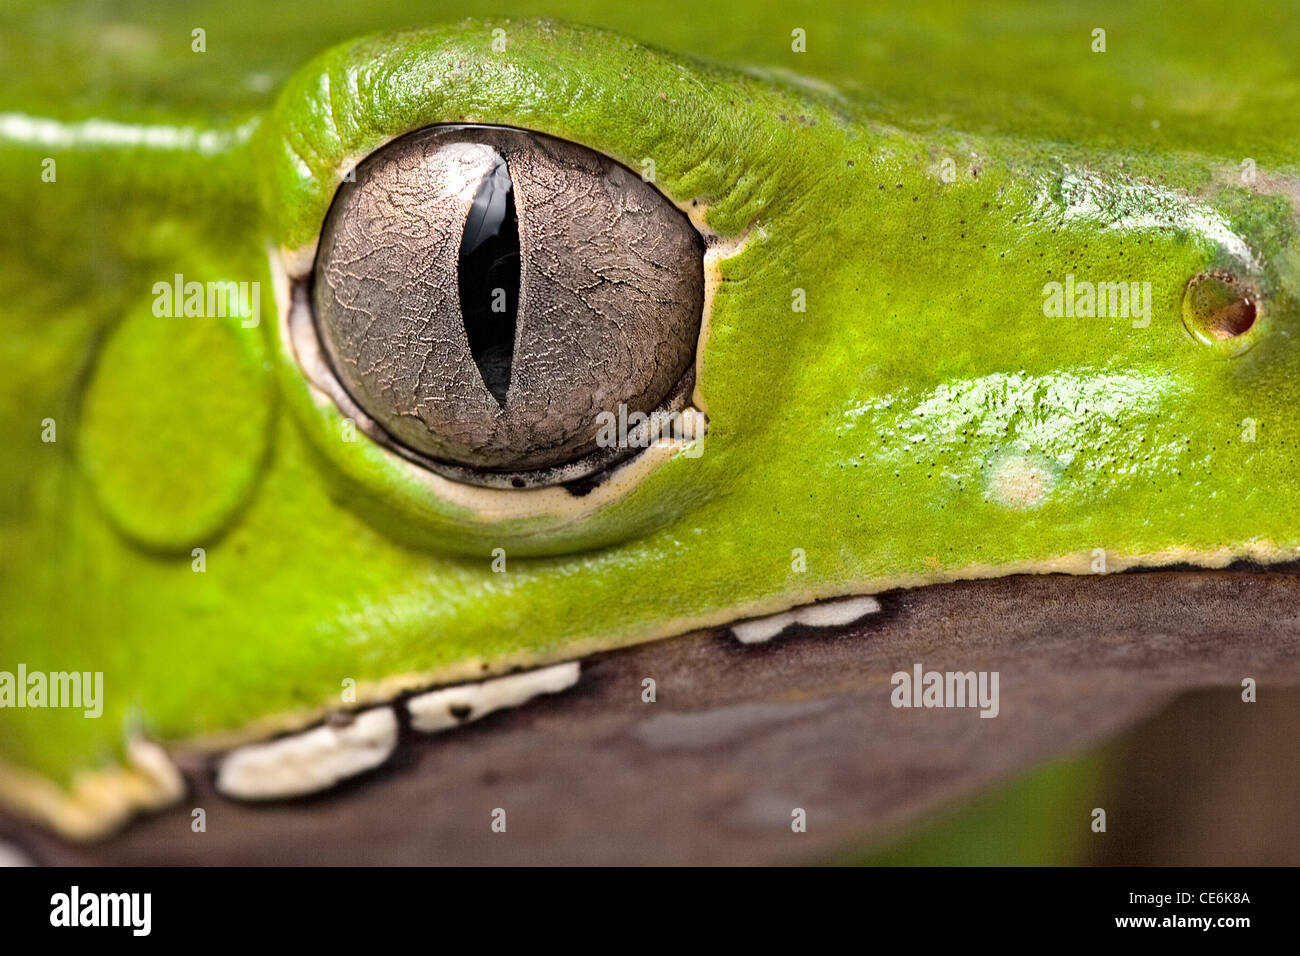 animal eye detail of tree frog head amphibian vertical pupil beautiful animal detail of iris Phyllomedusa bicolor - Stock Image